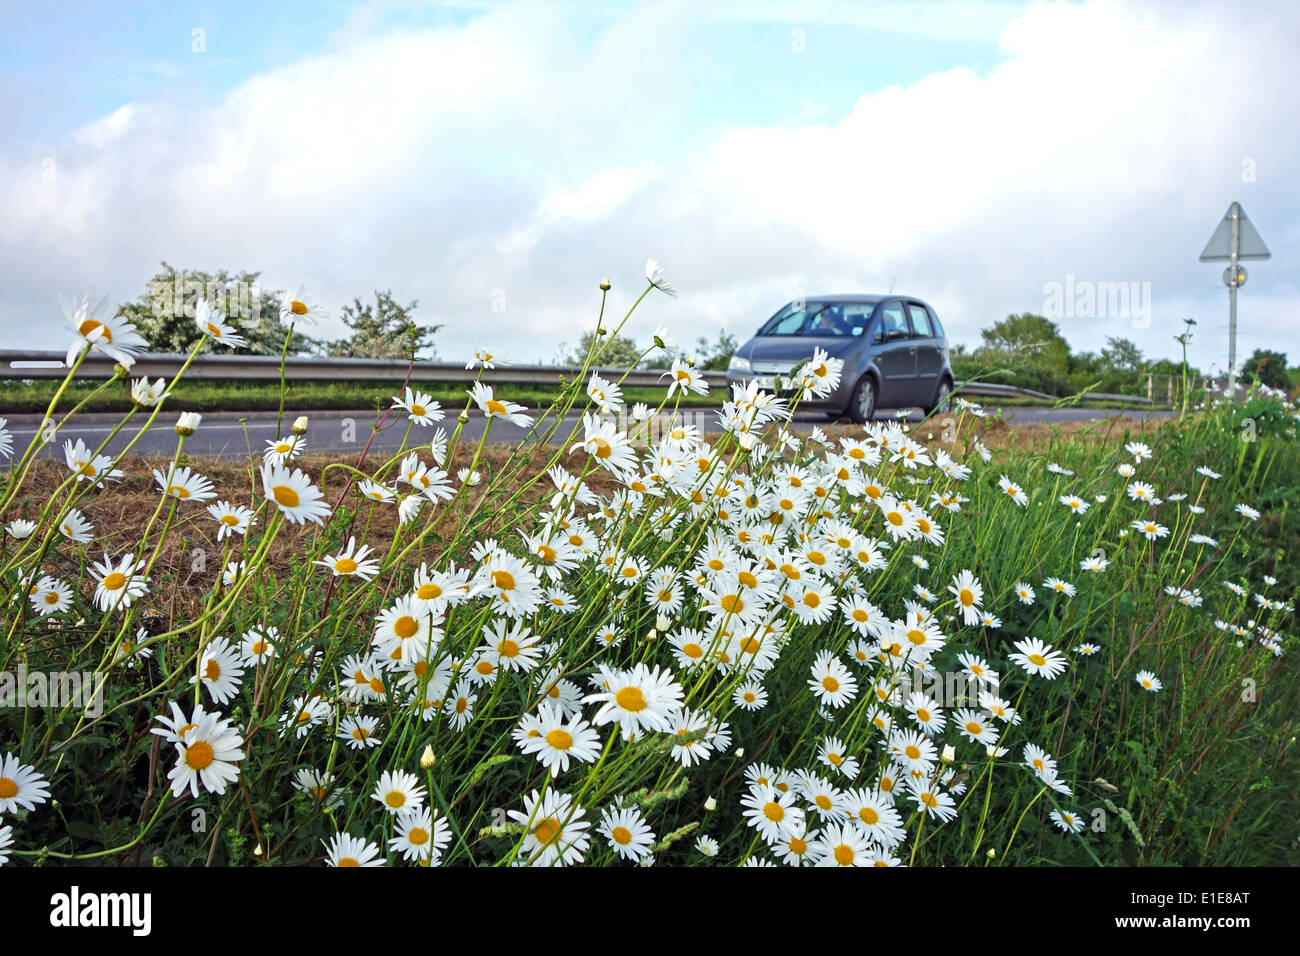 oxeye daisies growing by the roadside in cornwall, uk Stock Photo